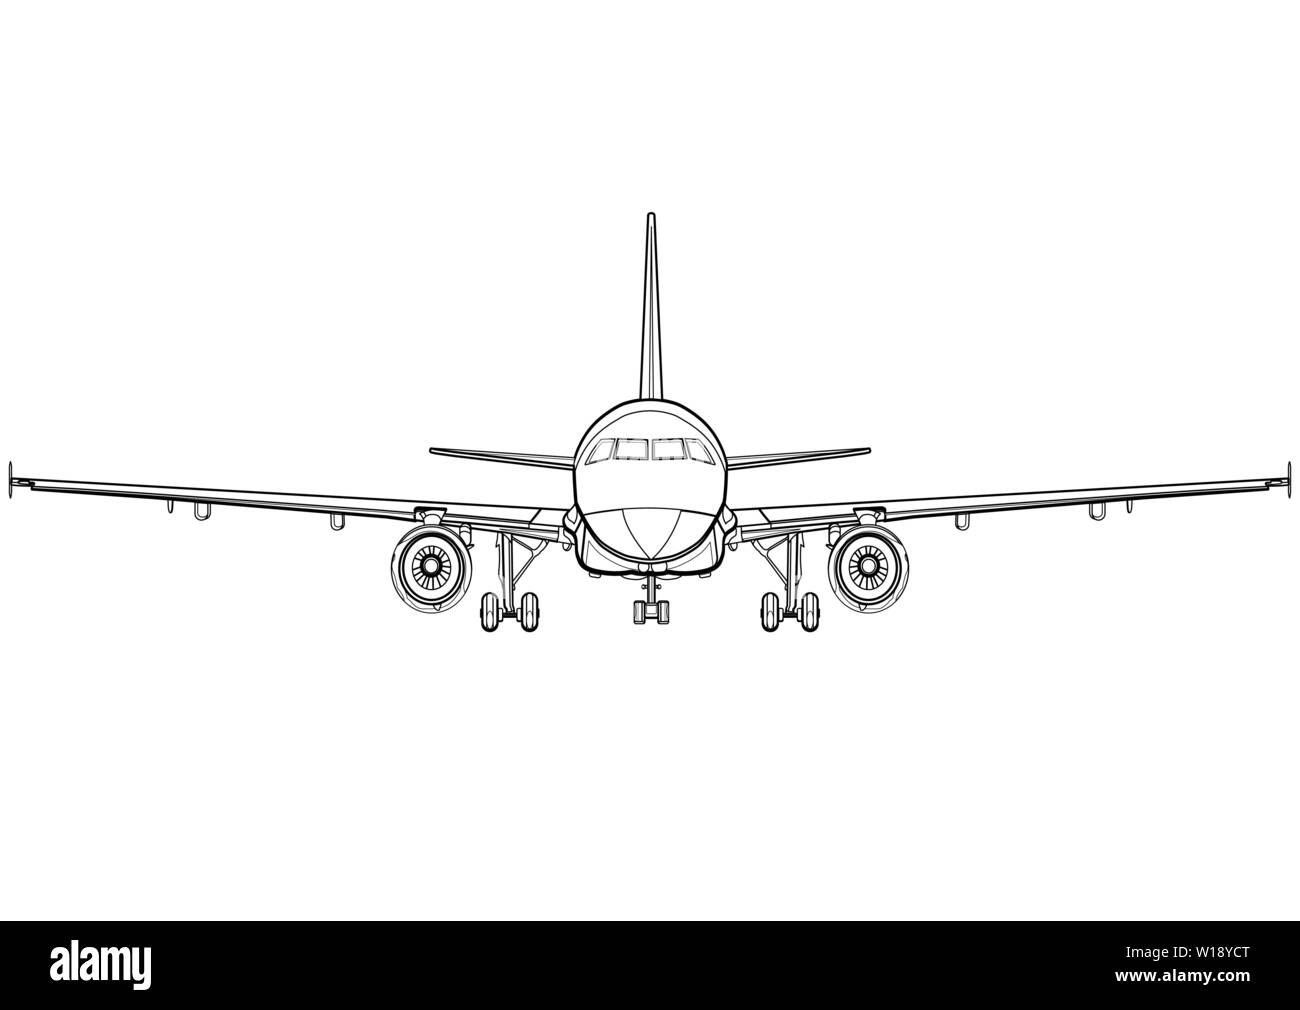 Aircraft Drawing High Resolution Stock Photography And Images Alamy